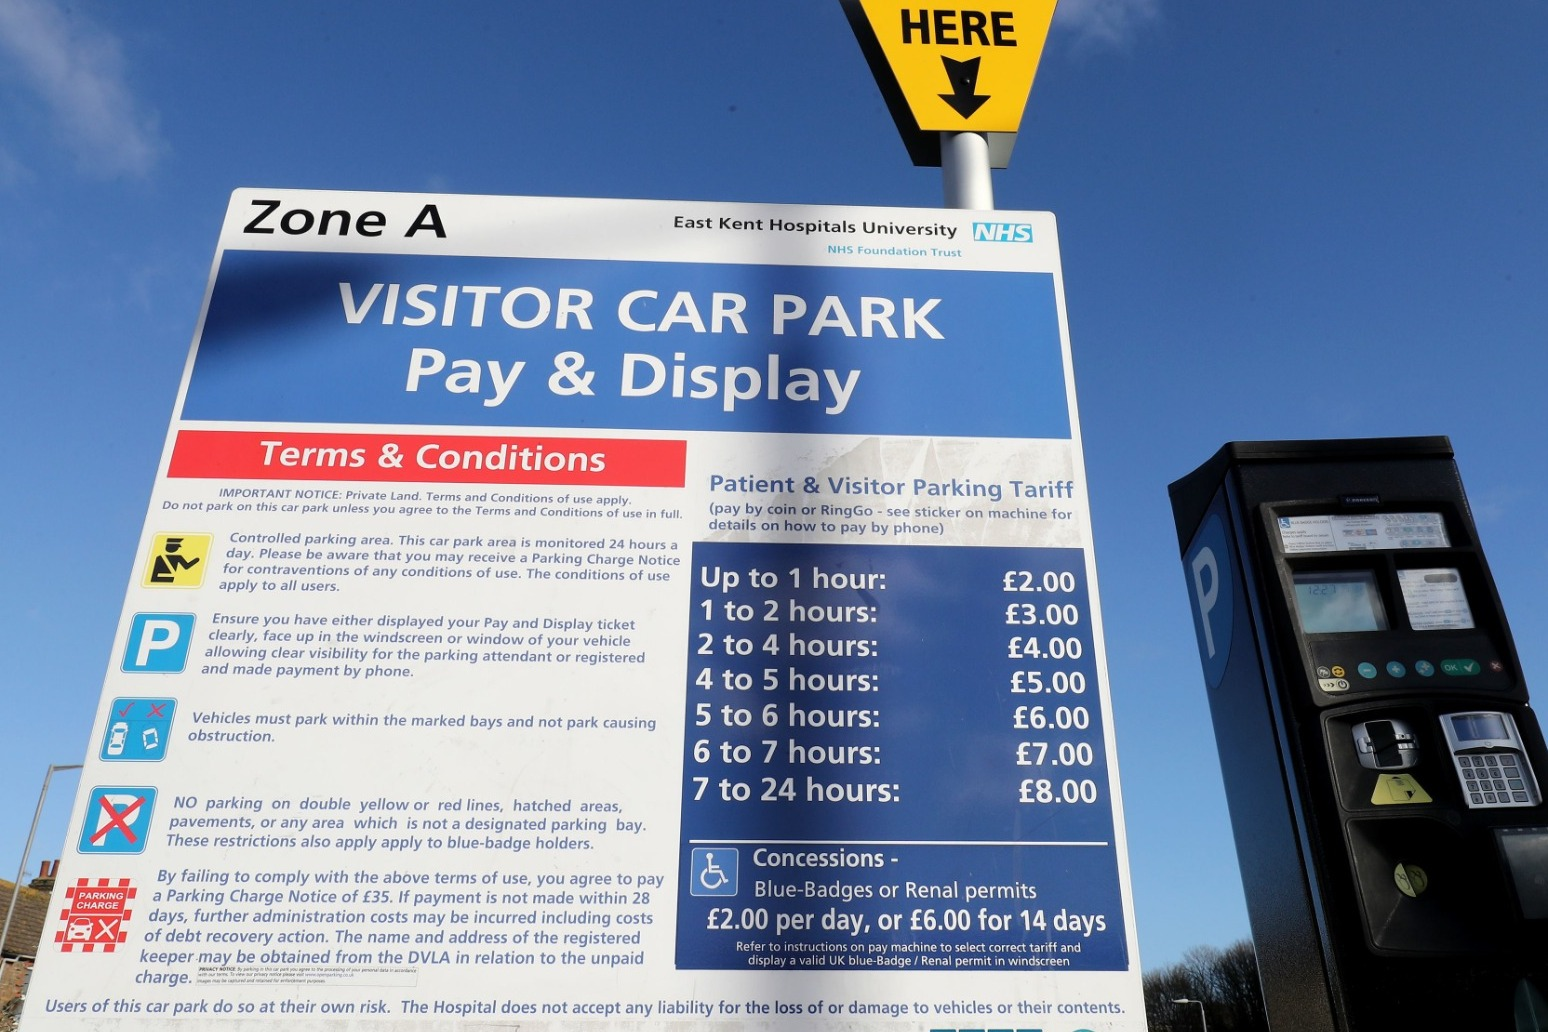 FREE PARKING FOR SOME NHS PATIENTS AND VISITORS TO BE ROLLED OUT